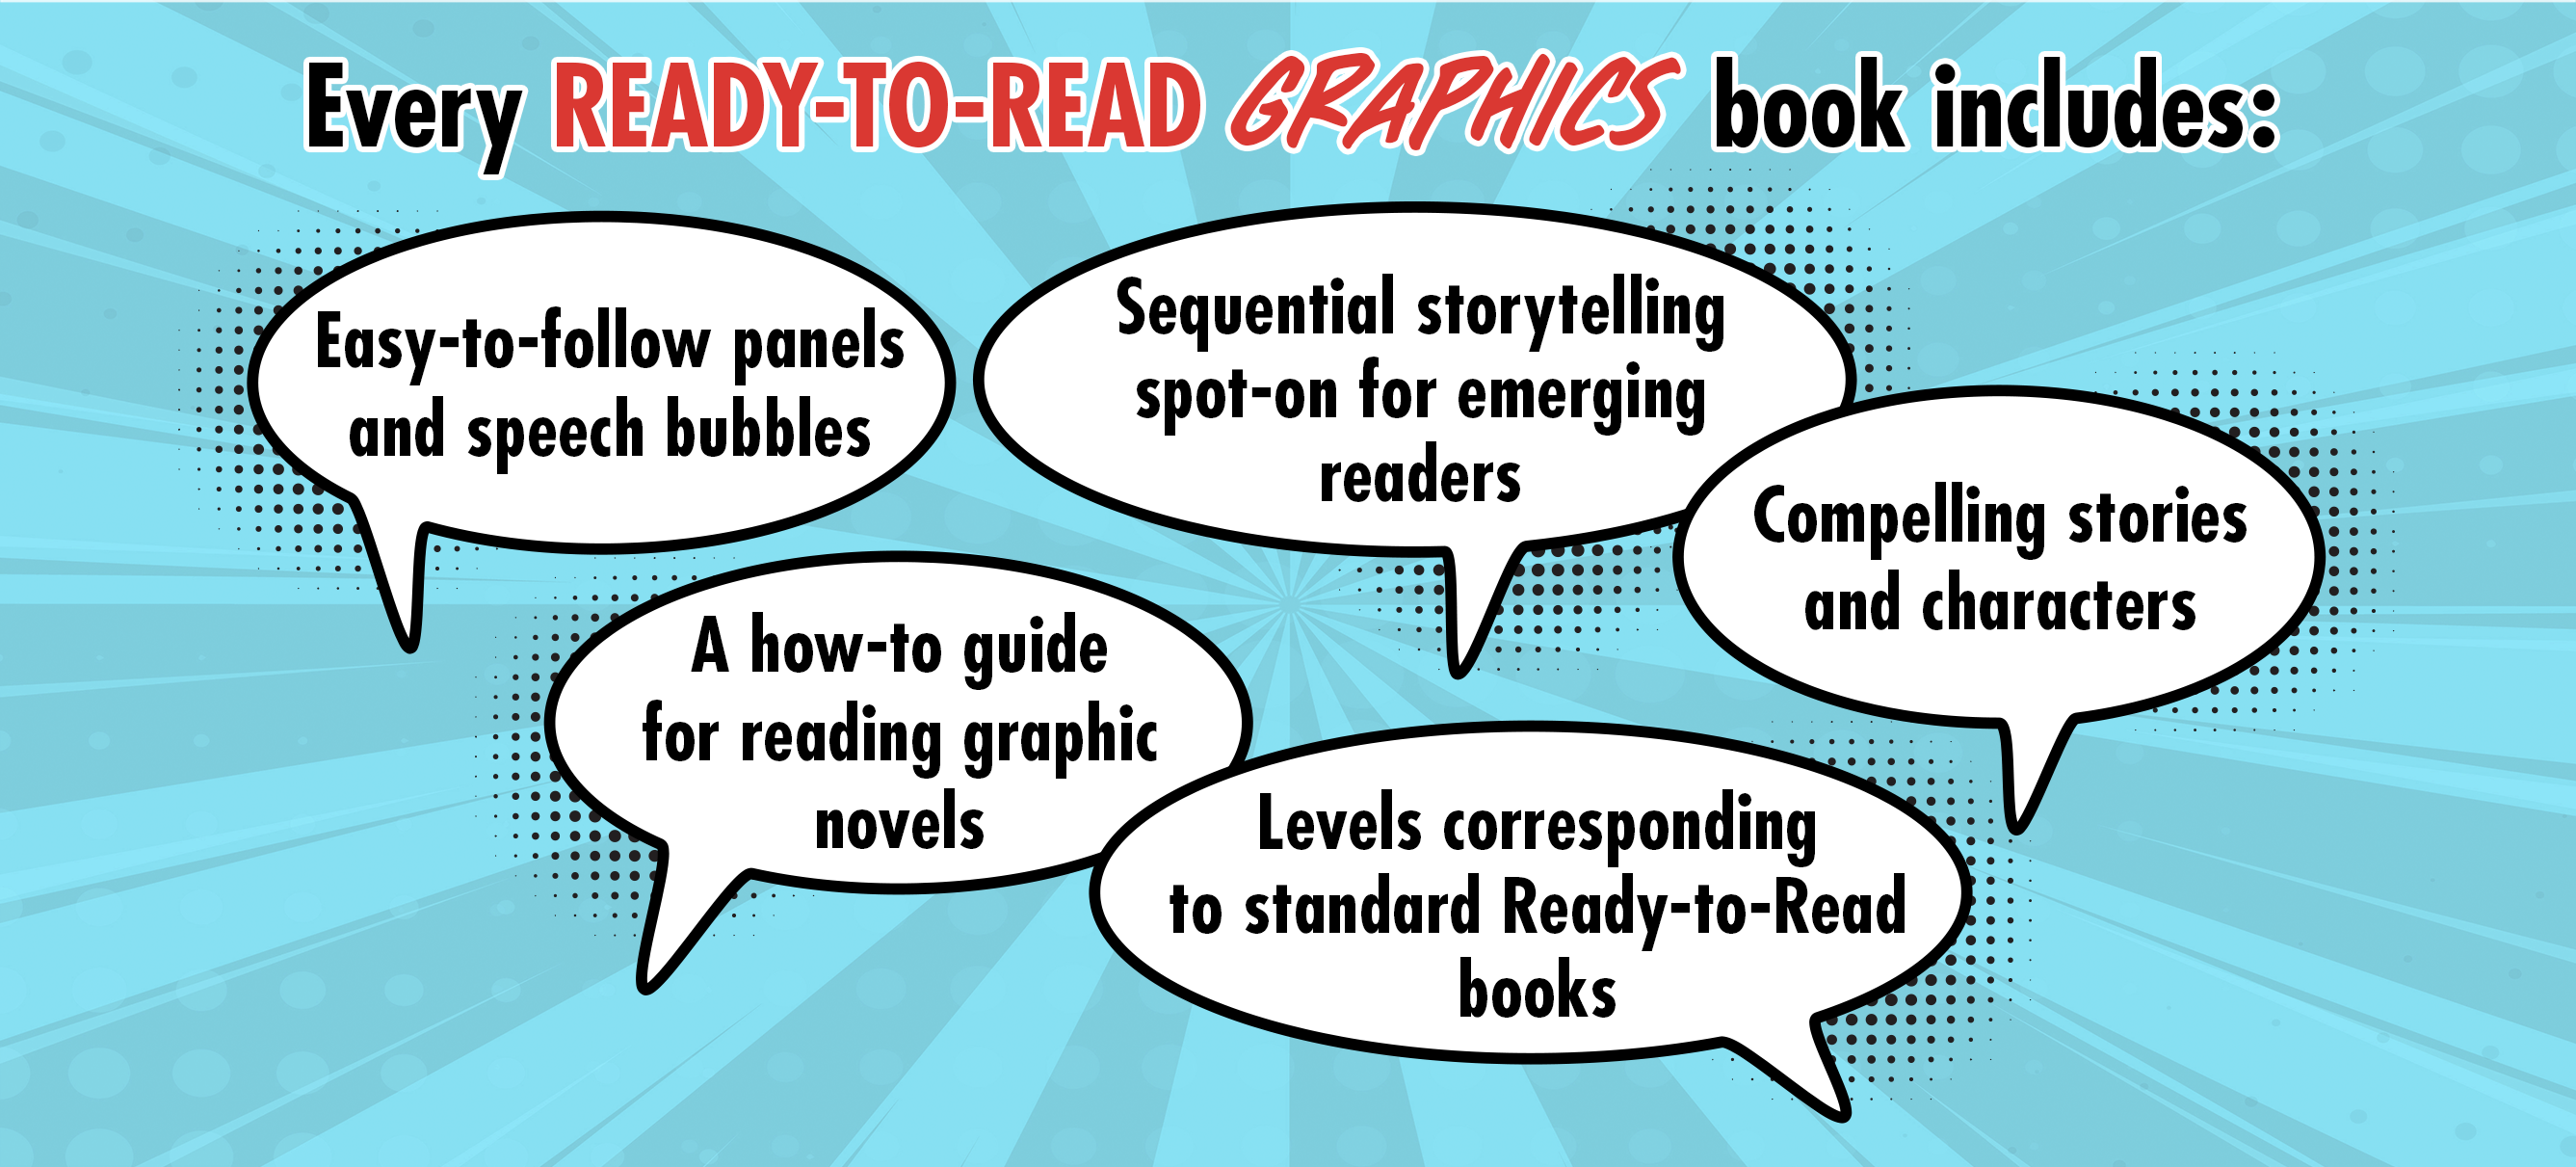 Ready-to-Read Graphics books give readers the perfect introduction to the graphic novel format with easy-to-follow panels, speech bubbles with accessible vocabulary, and sequential storytelling that is spot-on for beginning readers. There's even how-to a guide for reading graphic novels.